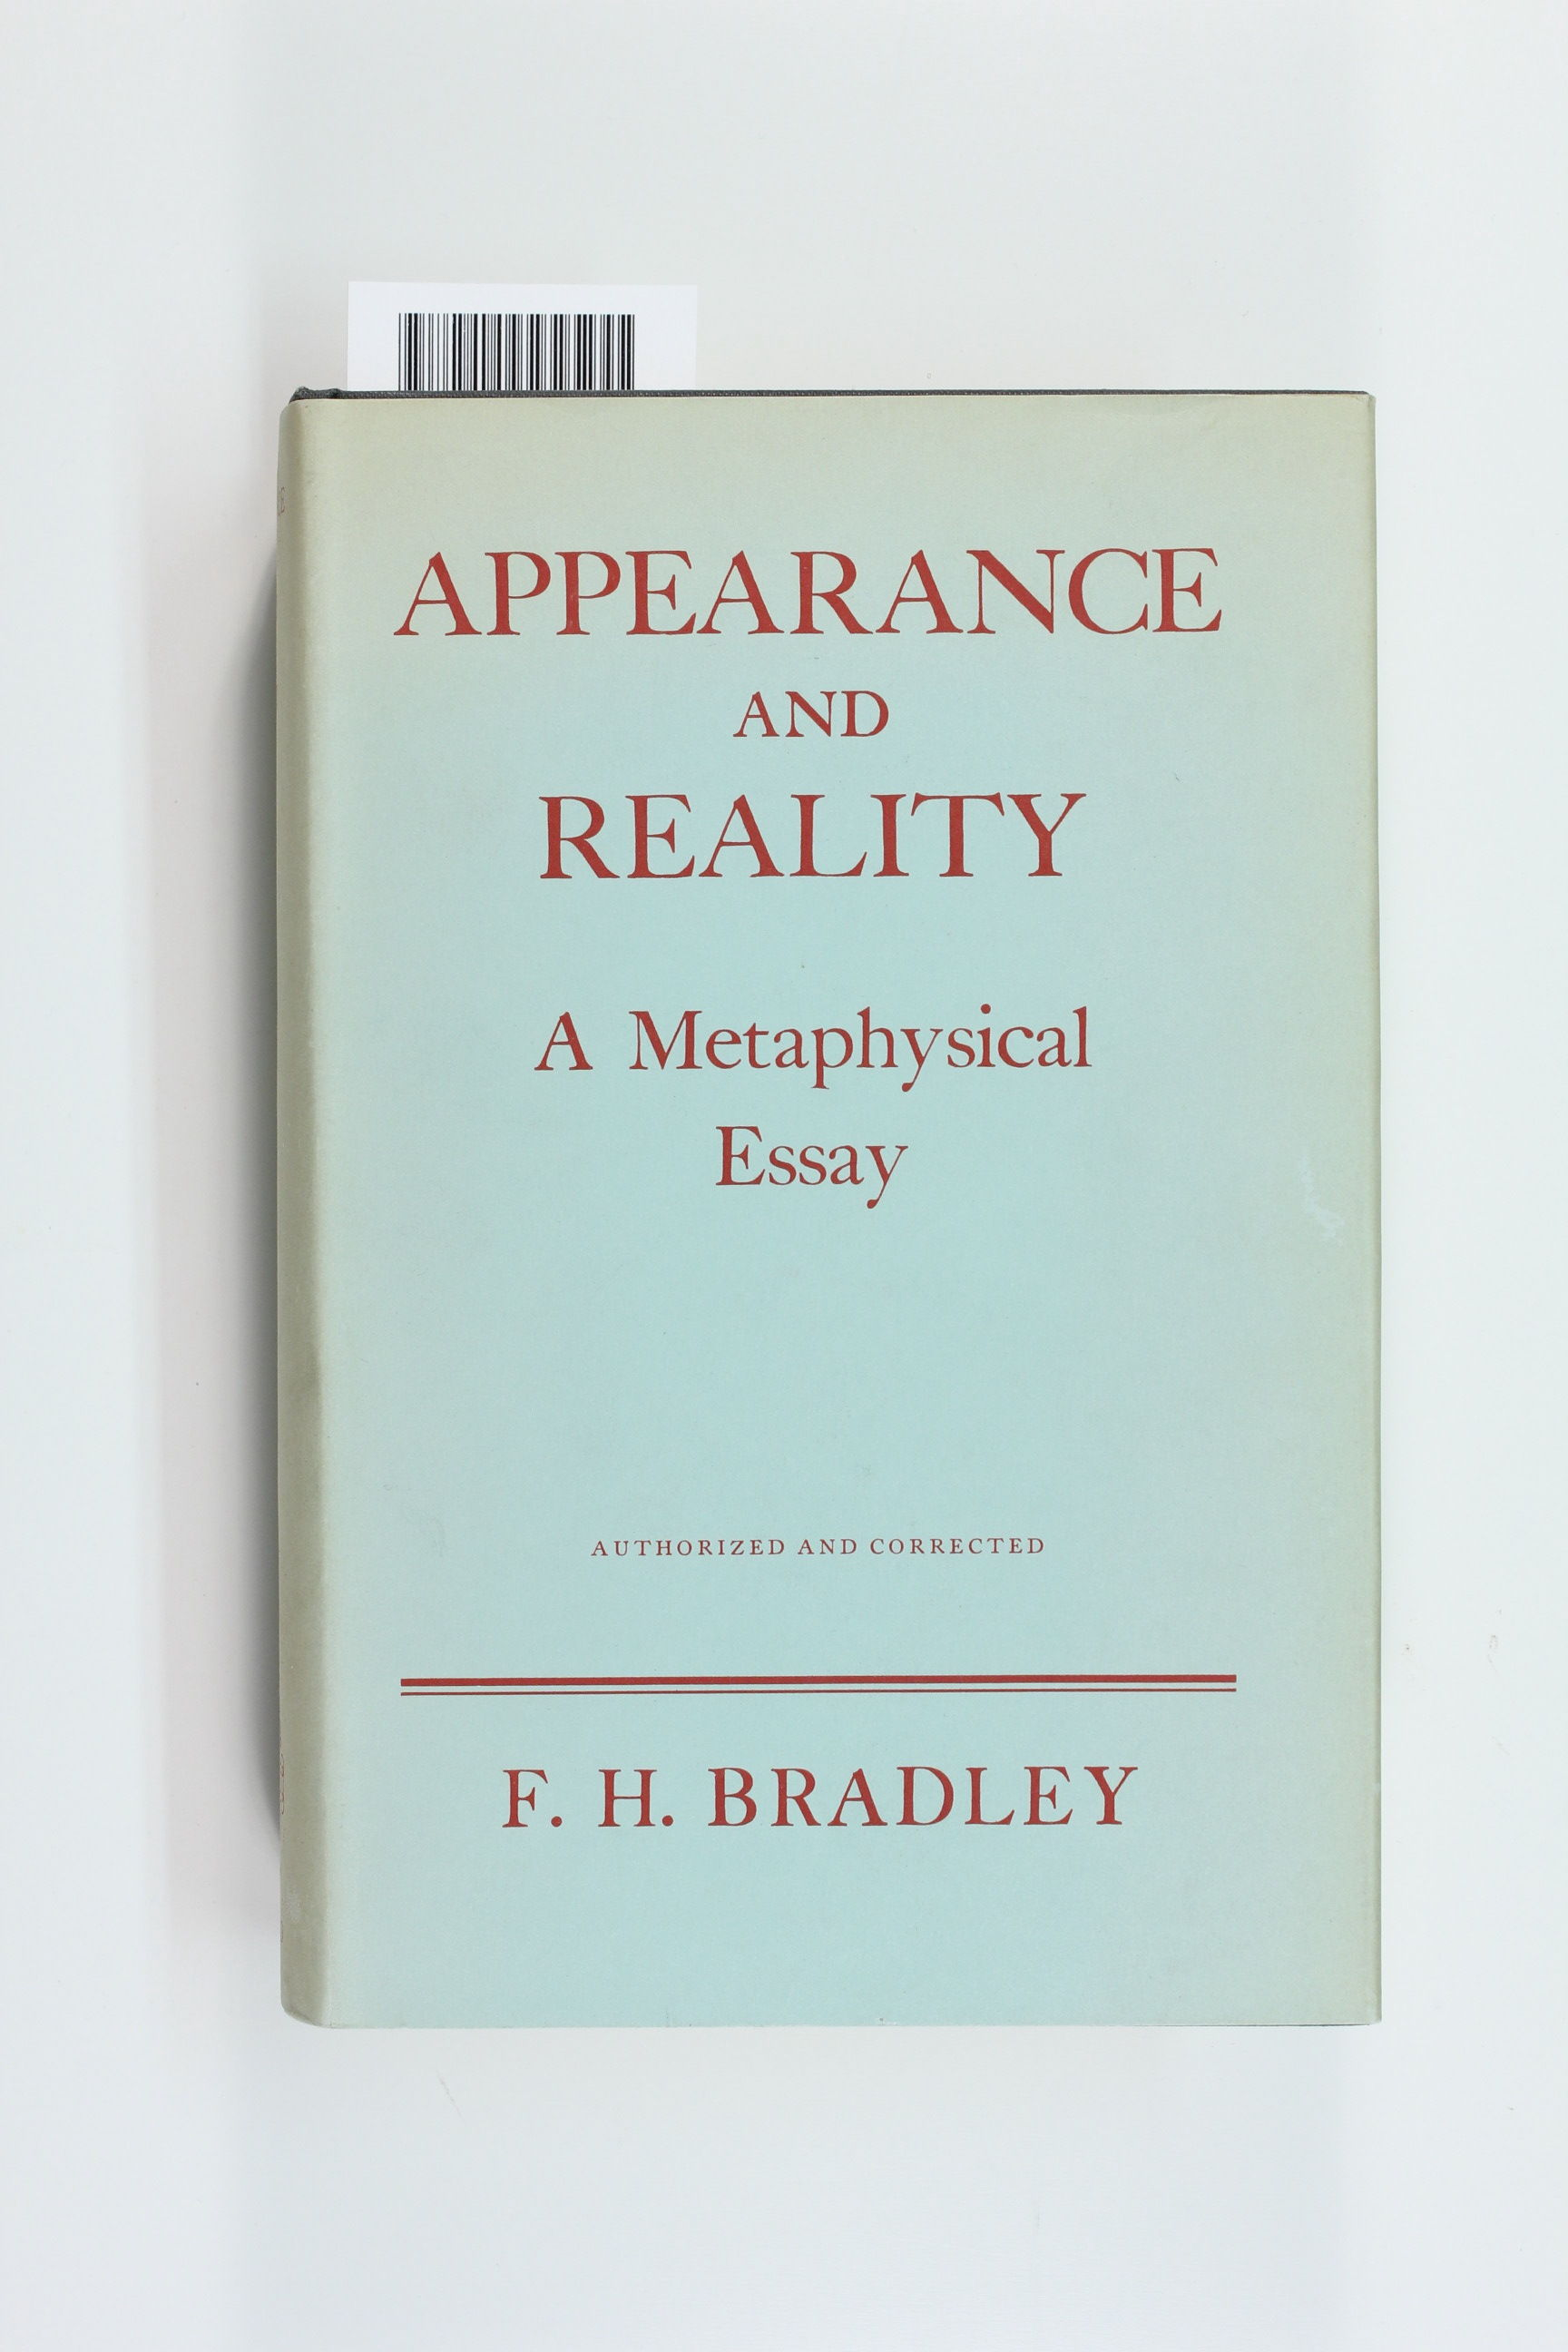 appearance essay metaphysical reality Appearance and reality: a metaphysical essay [f h bradley] on amazoncom free shipping on qualifying offers xxiv 558p burgundy cloth still quite bright, inner.